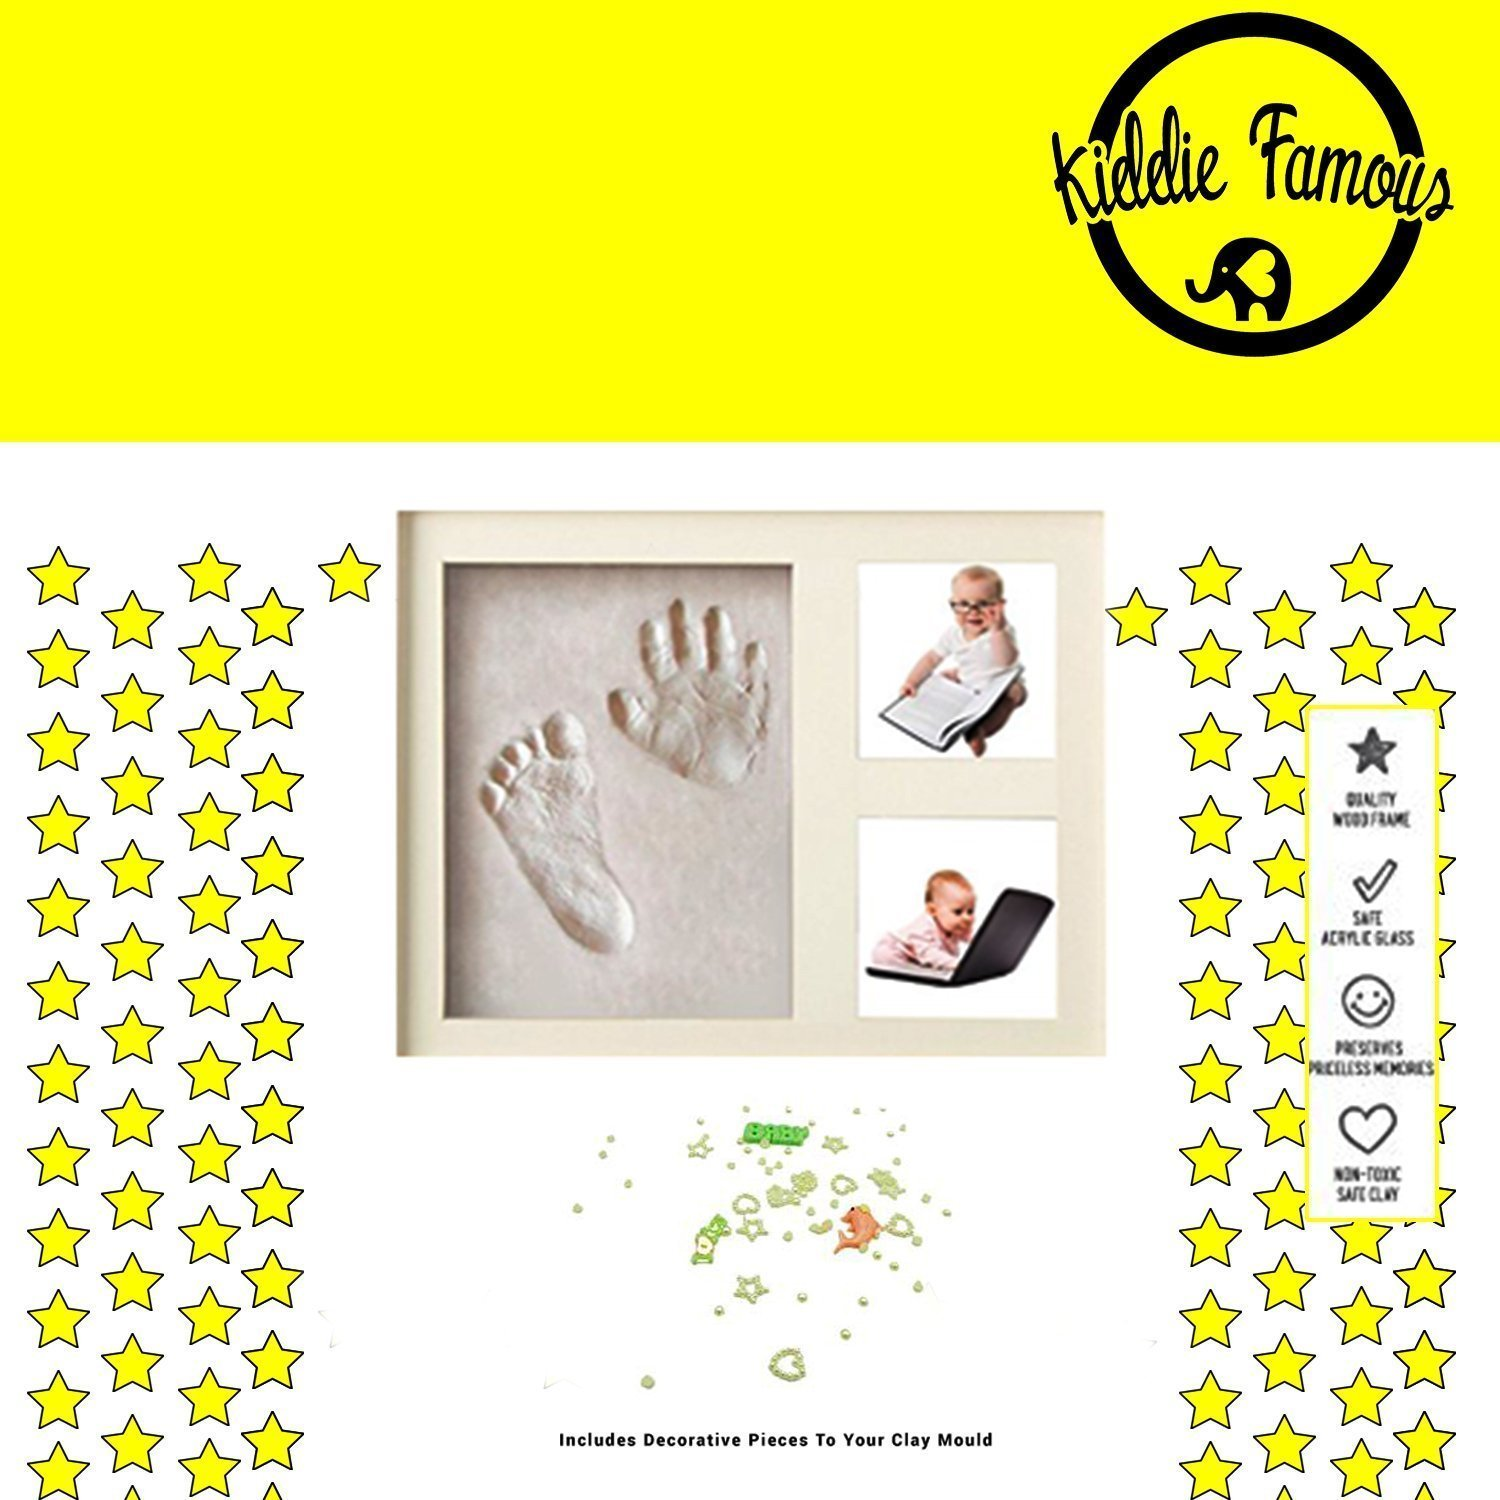 100% ORGANIC Baby Handprint Kit (WHITE) | SAFE, NO MOLD| Baby Picture Frame, Baby Footprint kit, Perfect for Baby Boy gifts,Top Baby Girl Gifts, Baby Shower Gifts, Newborn Baby Keepsake Frames Kiddie Famous